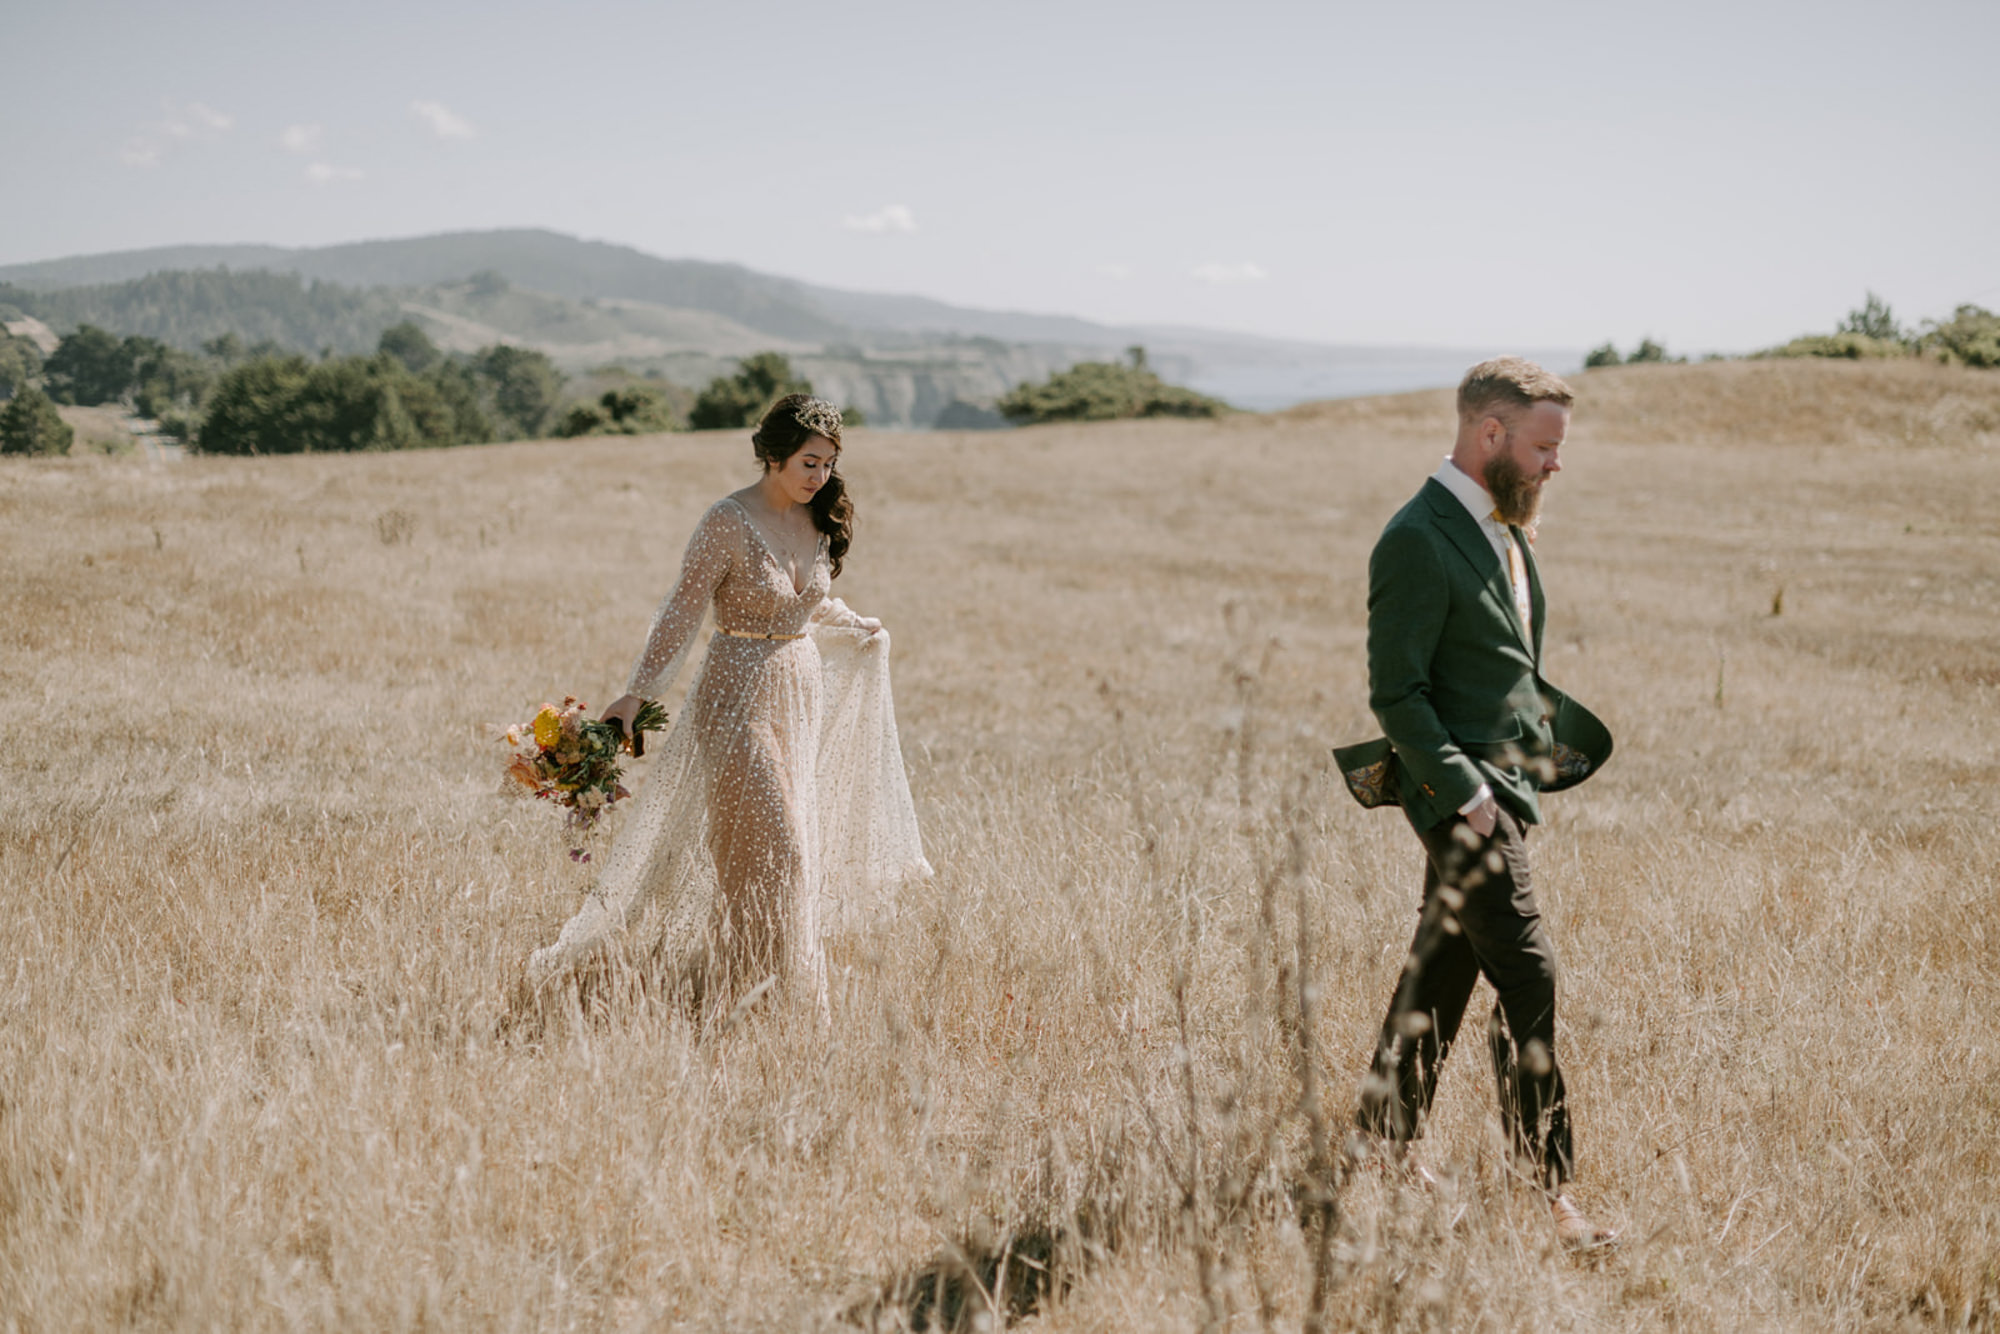 Bride in sparkle taupe plunging dress walking with groom in field - photo by Kri